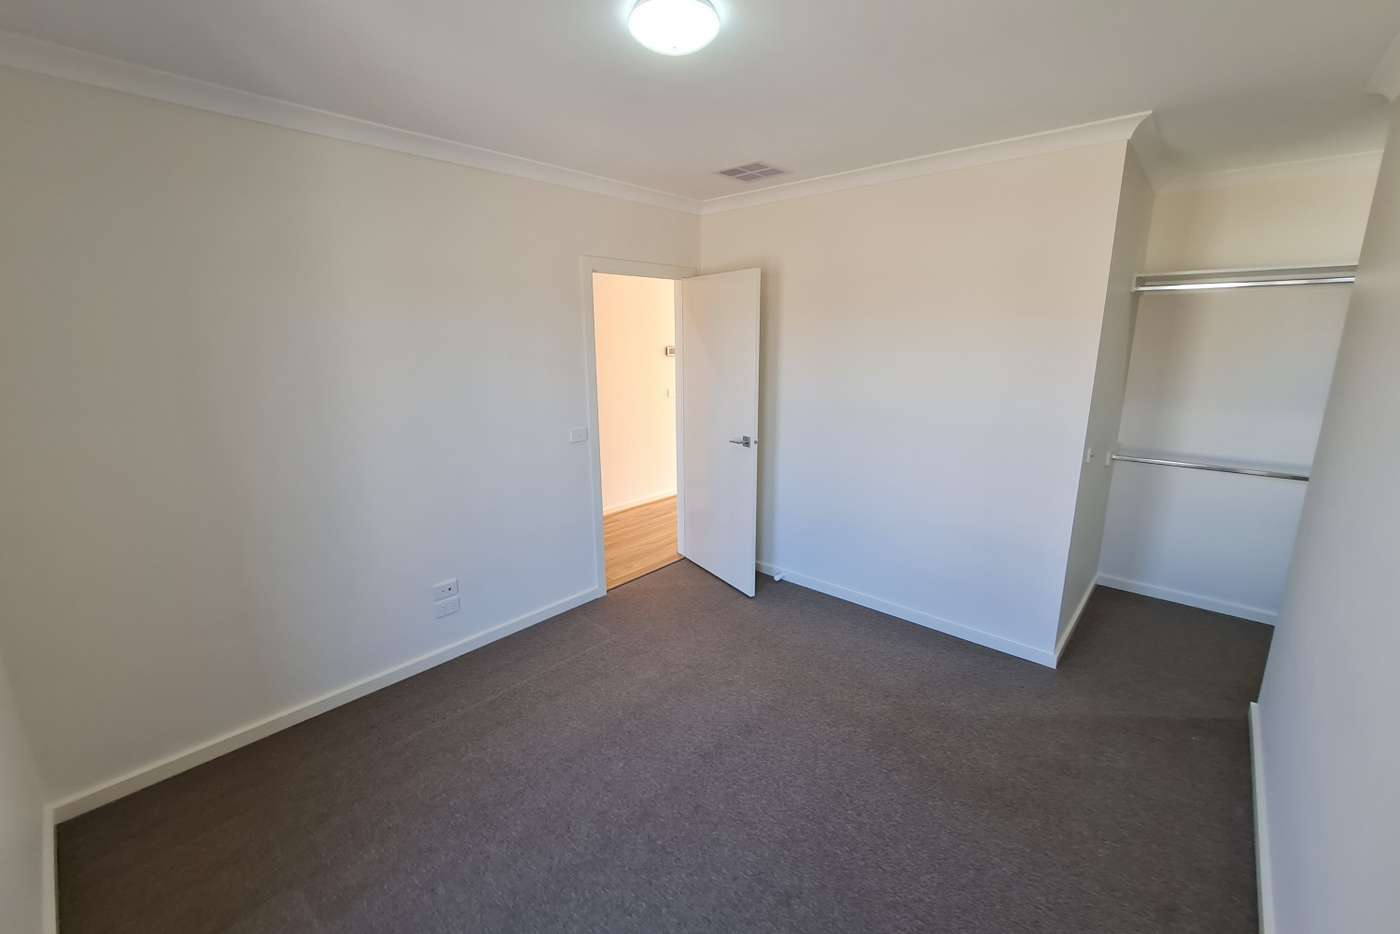 Sixth view of Homely house listing, 14 Nassau Road, Point Cook VIC 3030